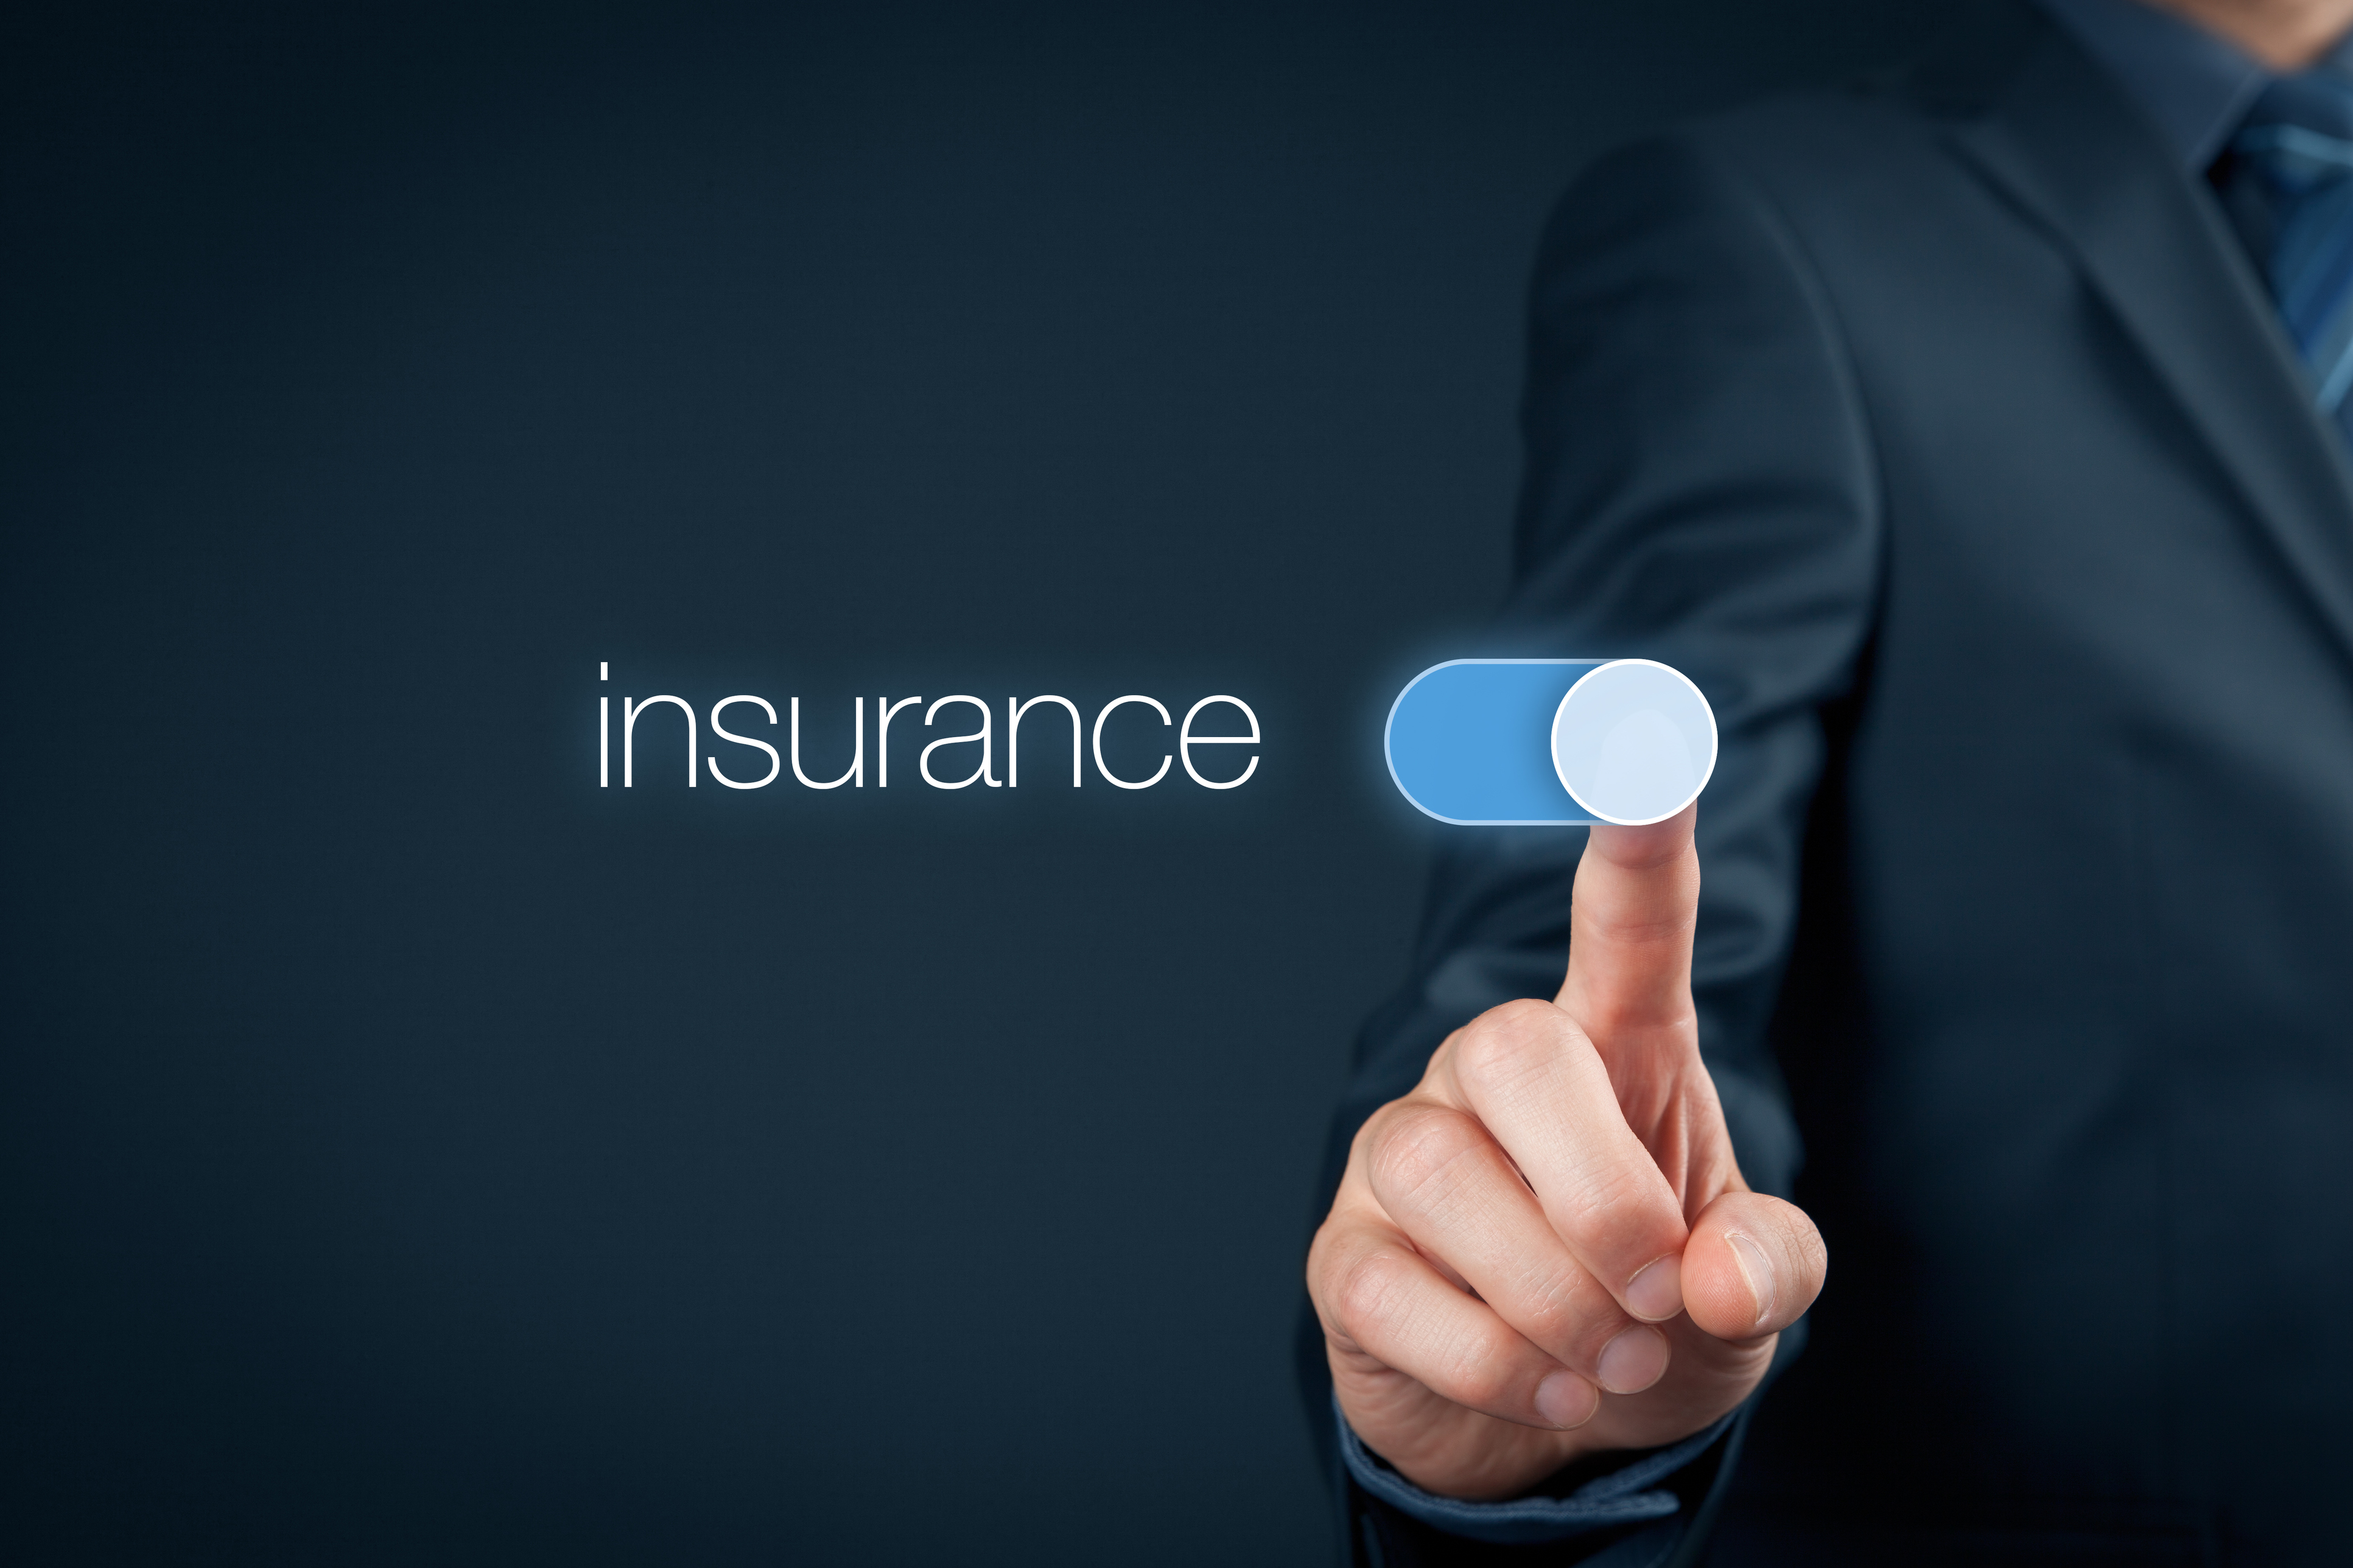 What Insurance Services Entail